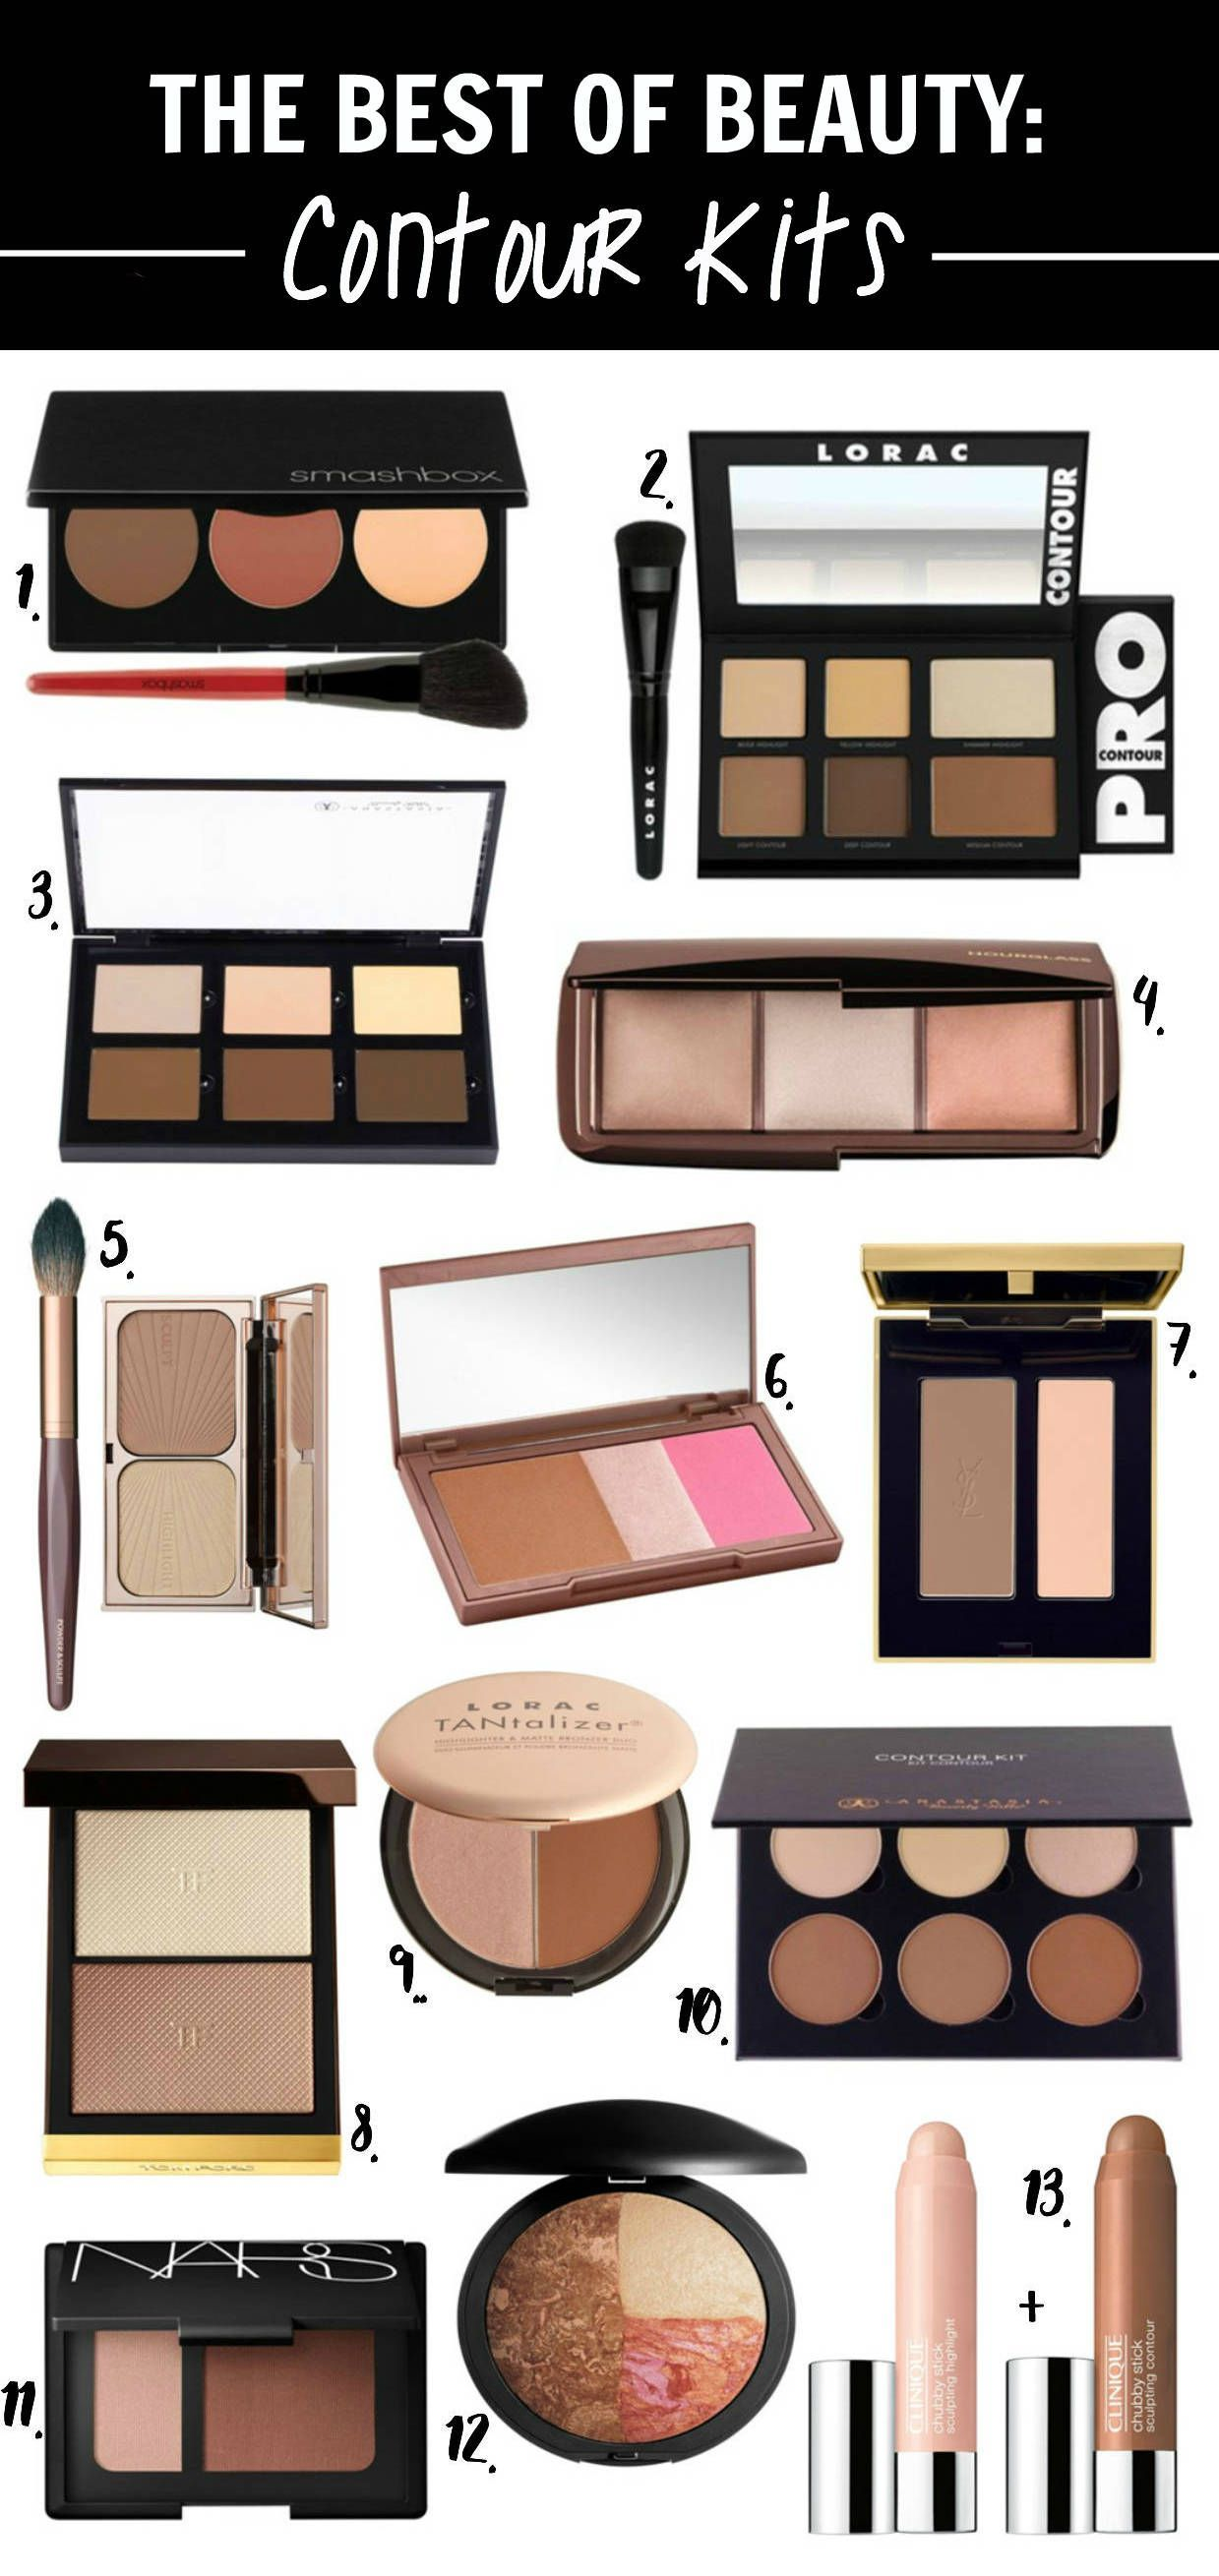 Beauty blogger mash elle has rounded up the best contour kits on the